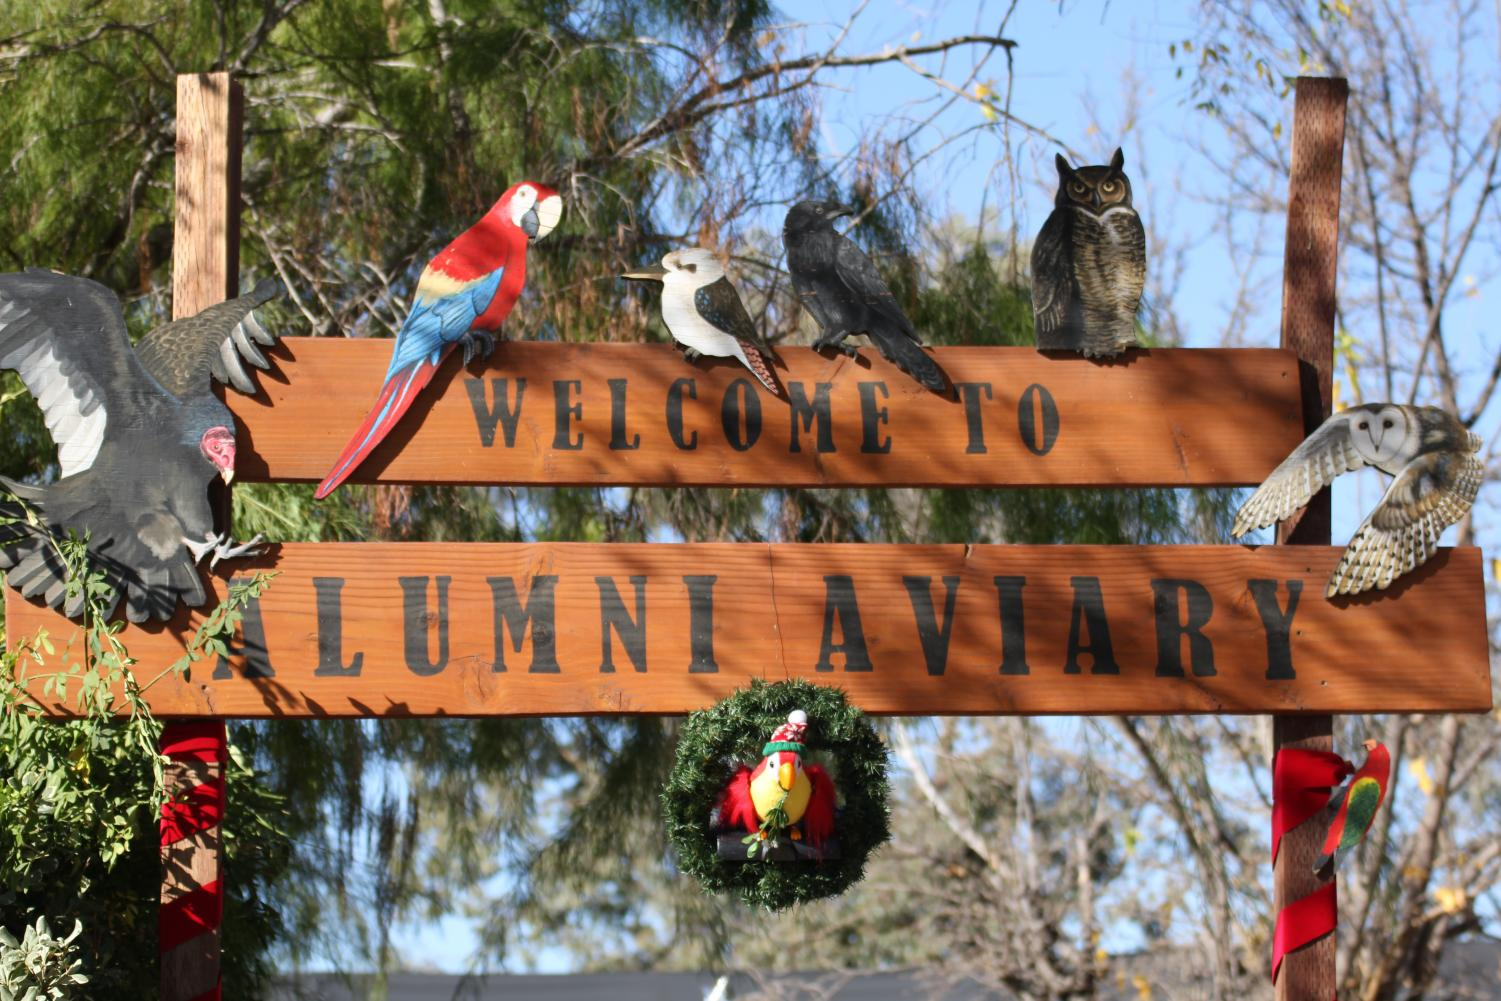 The Alumni Aviary entrance at the America's Teaching Zoo at Moorpark College.